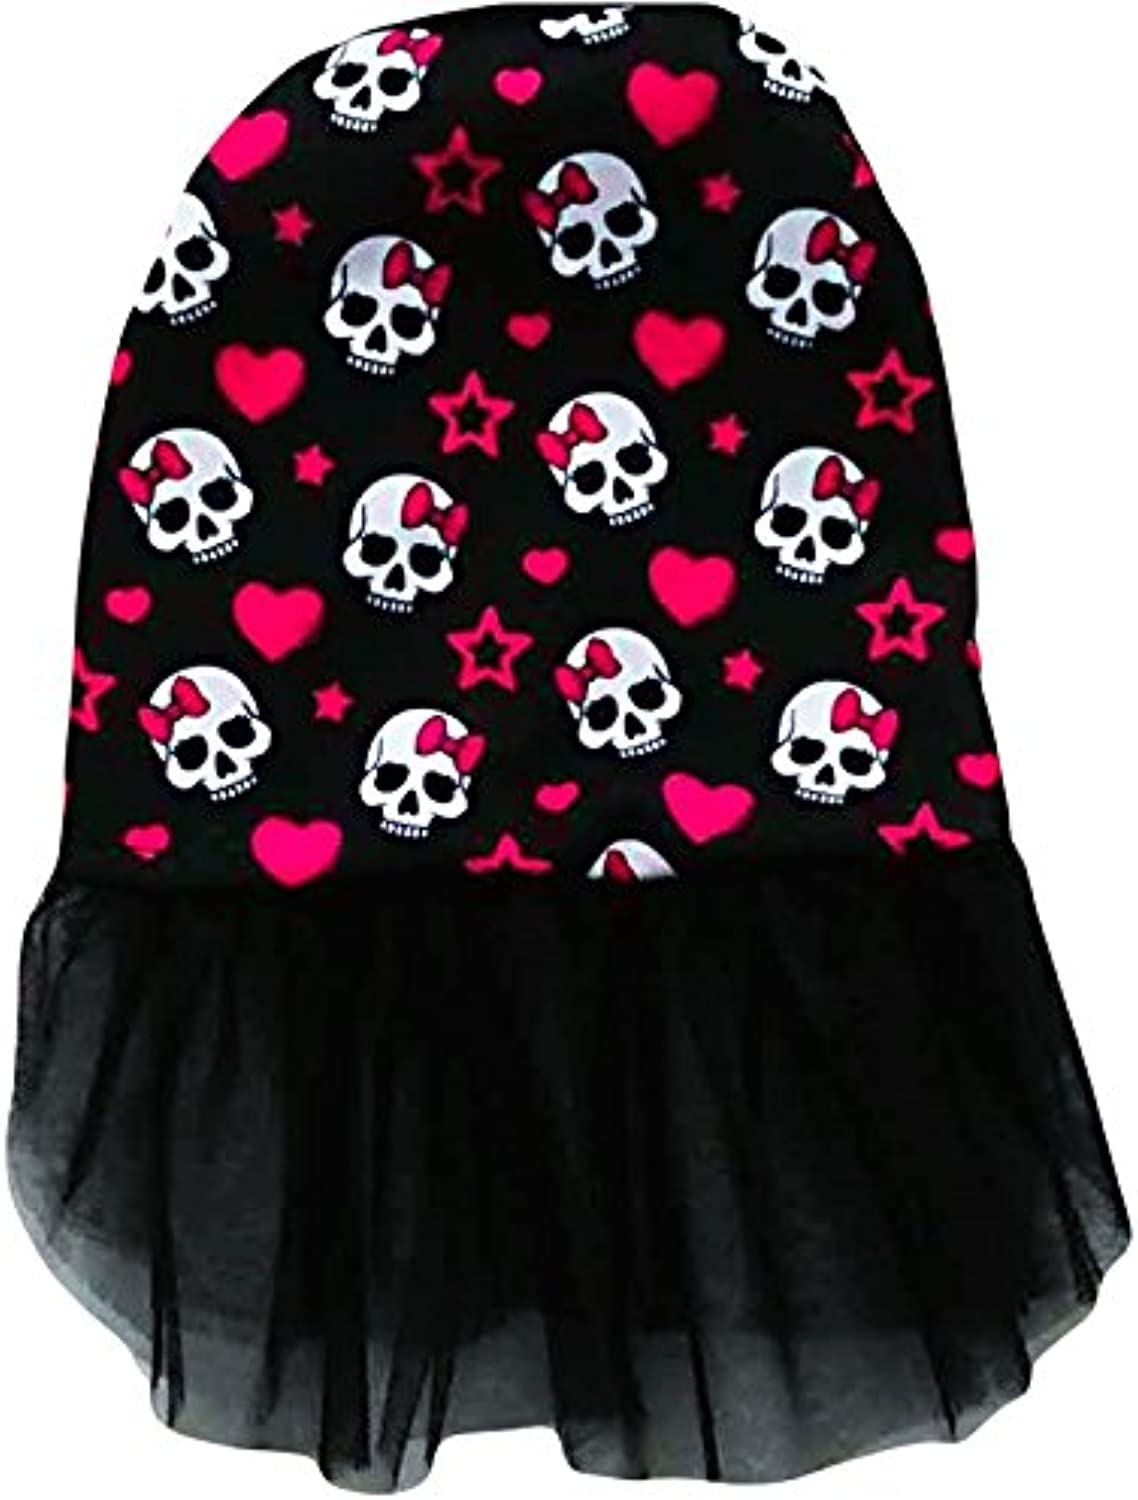 Ollypet Halloween Dog Costume Dress Skull Print Skeleton Clothes for Small Dogs Cat Puppy Apparel Black XL